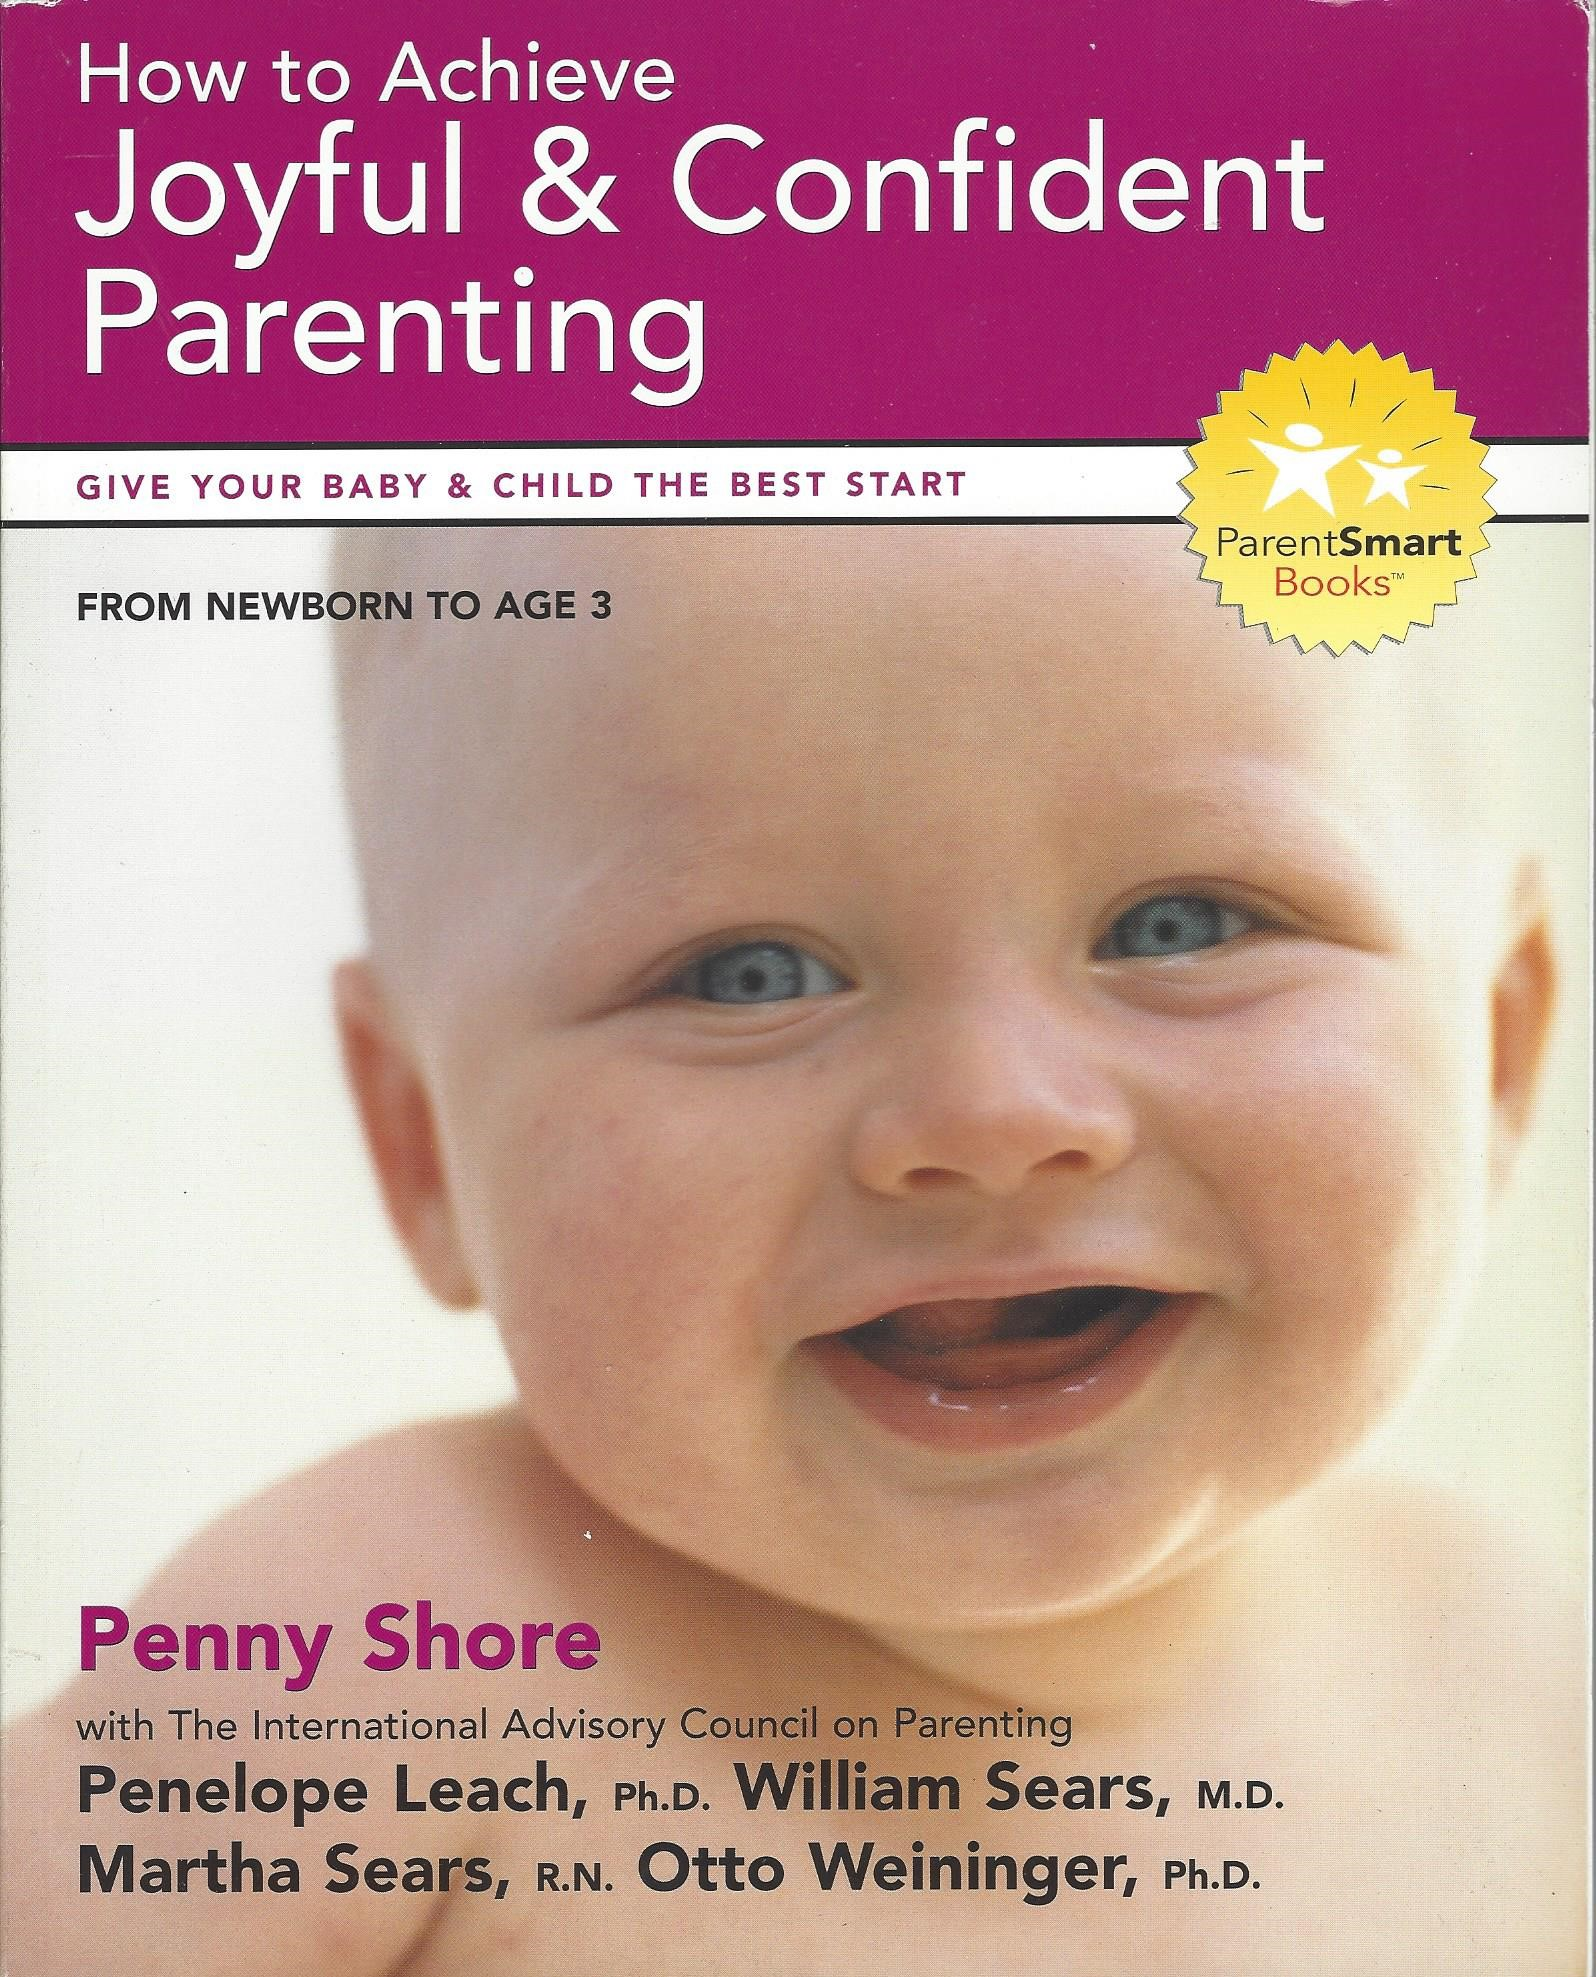 - Joyful & Confident ParentingBy Penny Shore with Penelope Leach, Ph.D., William Sears, M.D., Martha Sears, R.N., Otto Weininger, Ph.D.